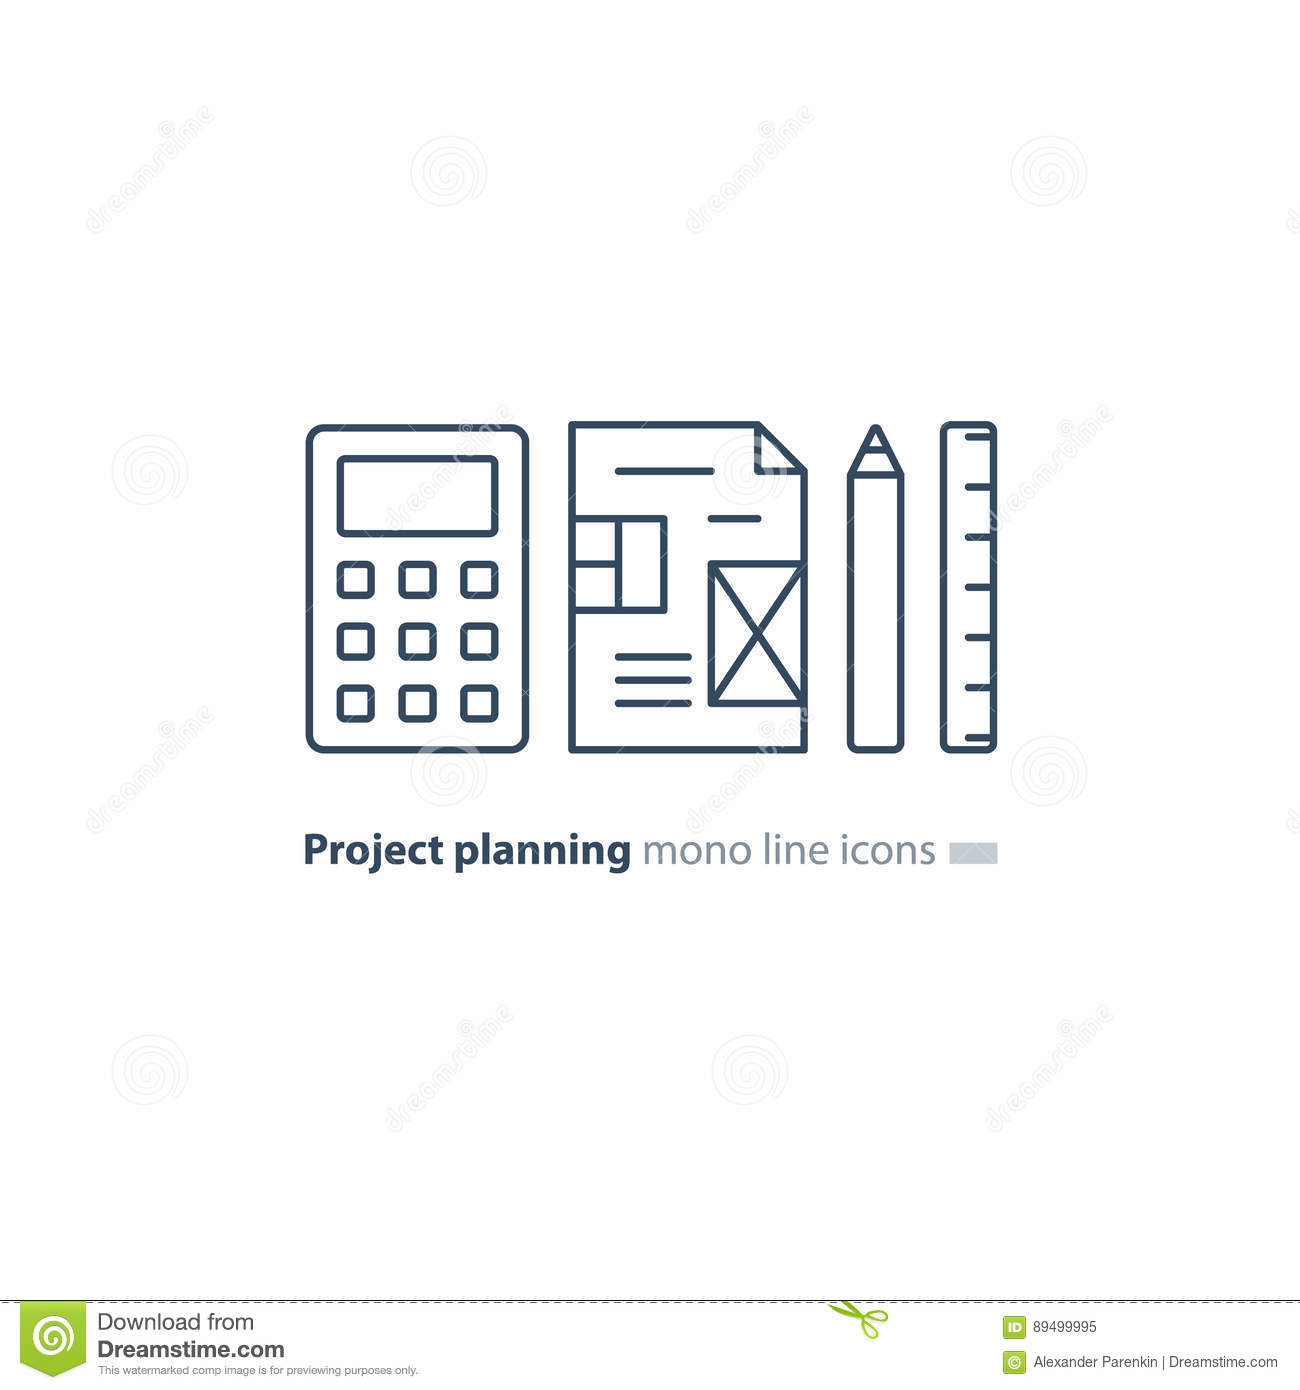 Business plan concept design blueprint calculator pencil and ruler download business plan concept design blueprint calculator pencil and ruler icons stock vector malvernweather Choice Image